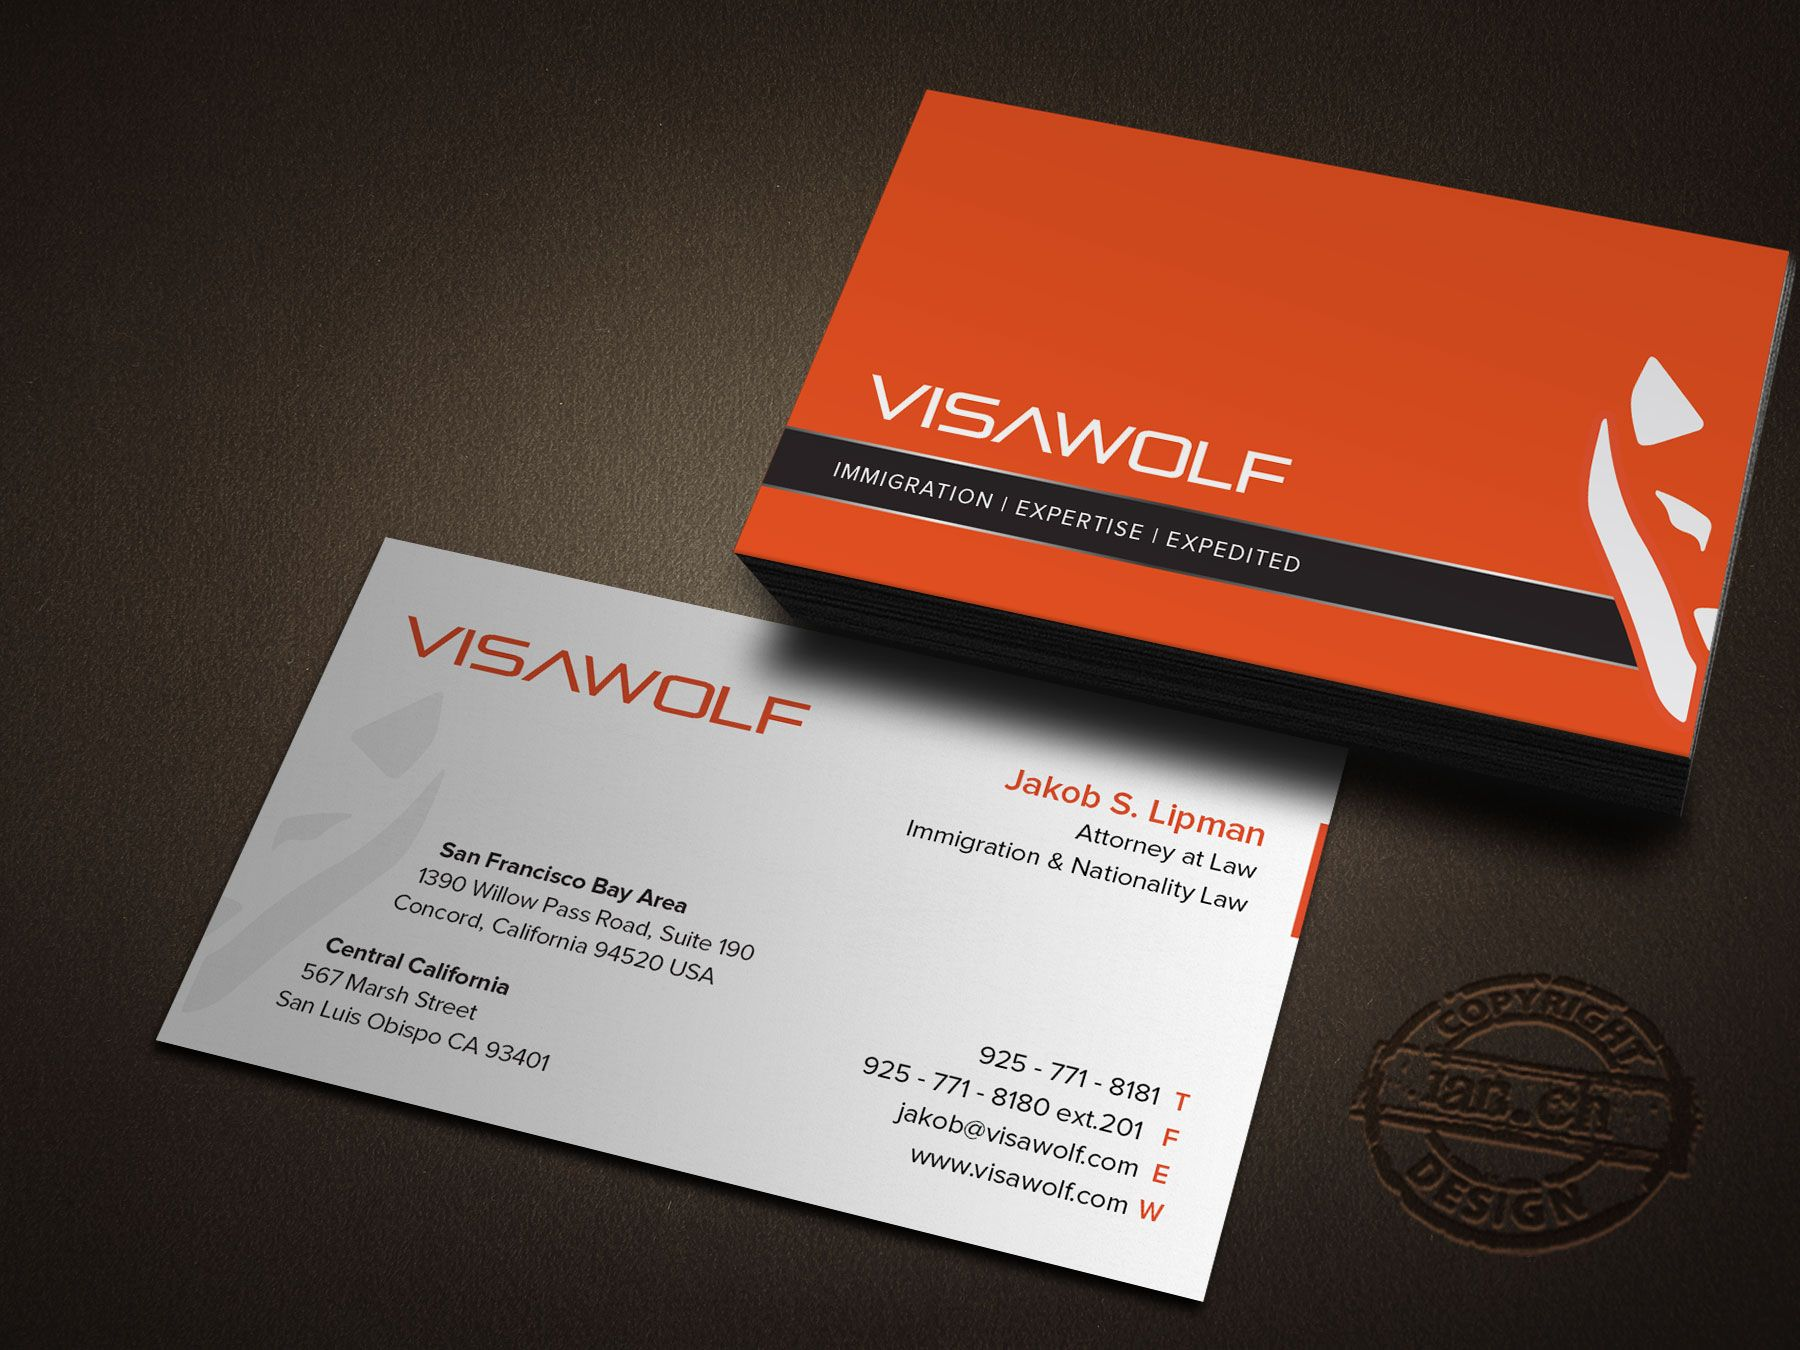 designs compose cards and stationary for immigration law firm with